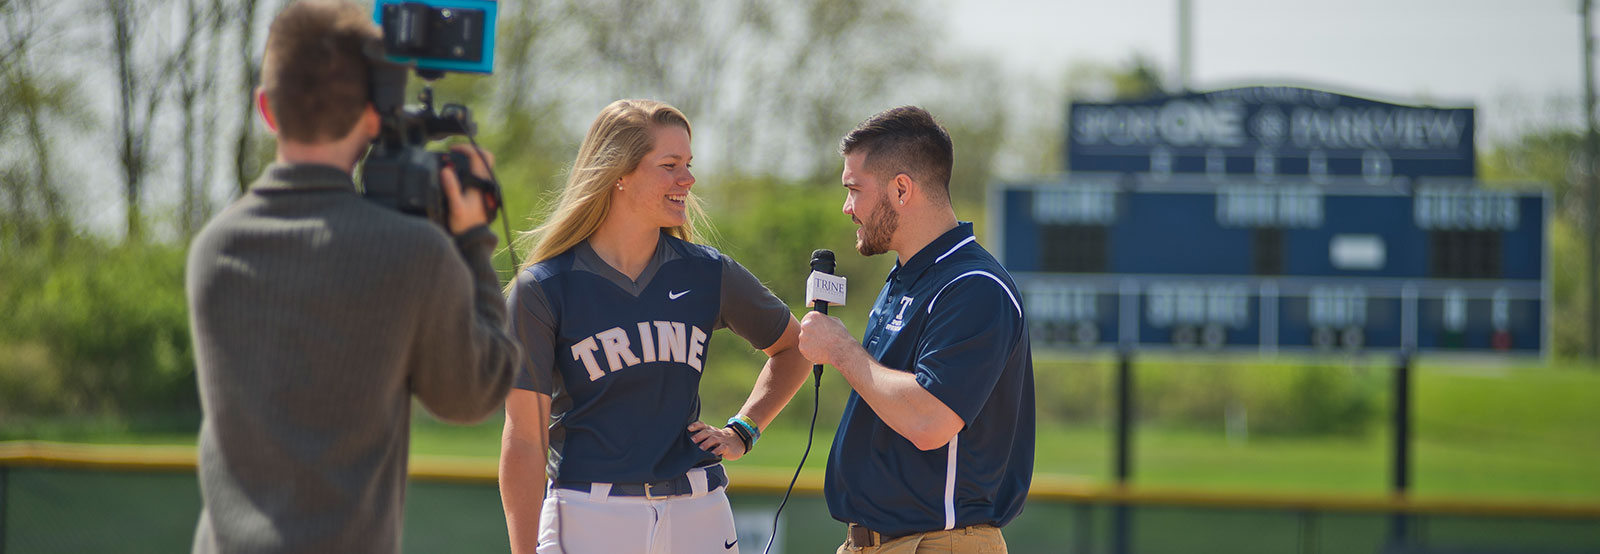 Student interviewing a softball player